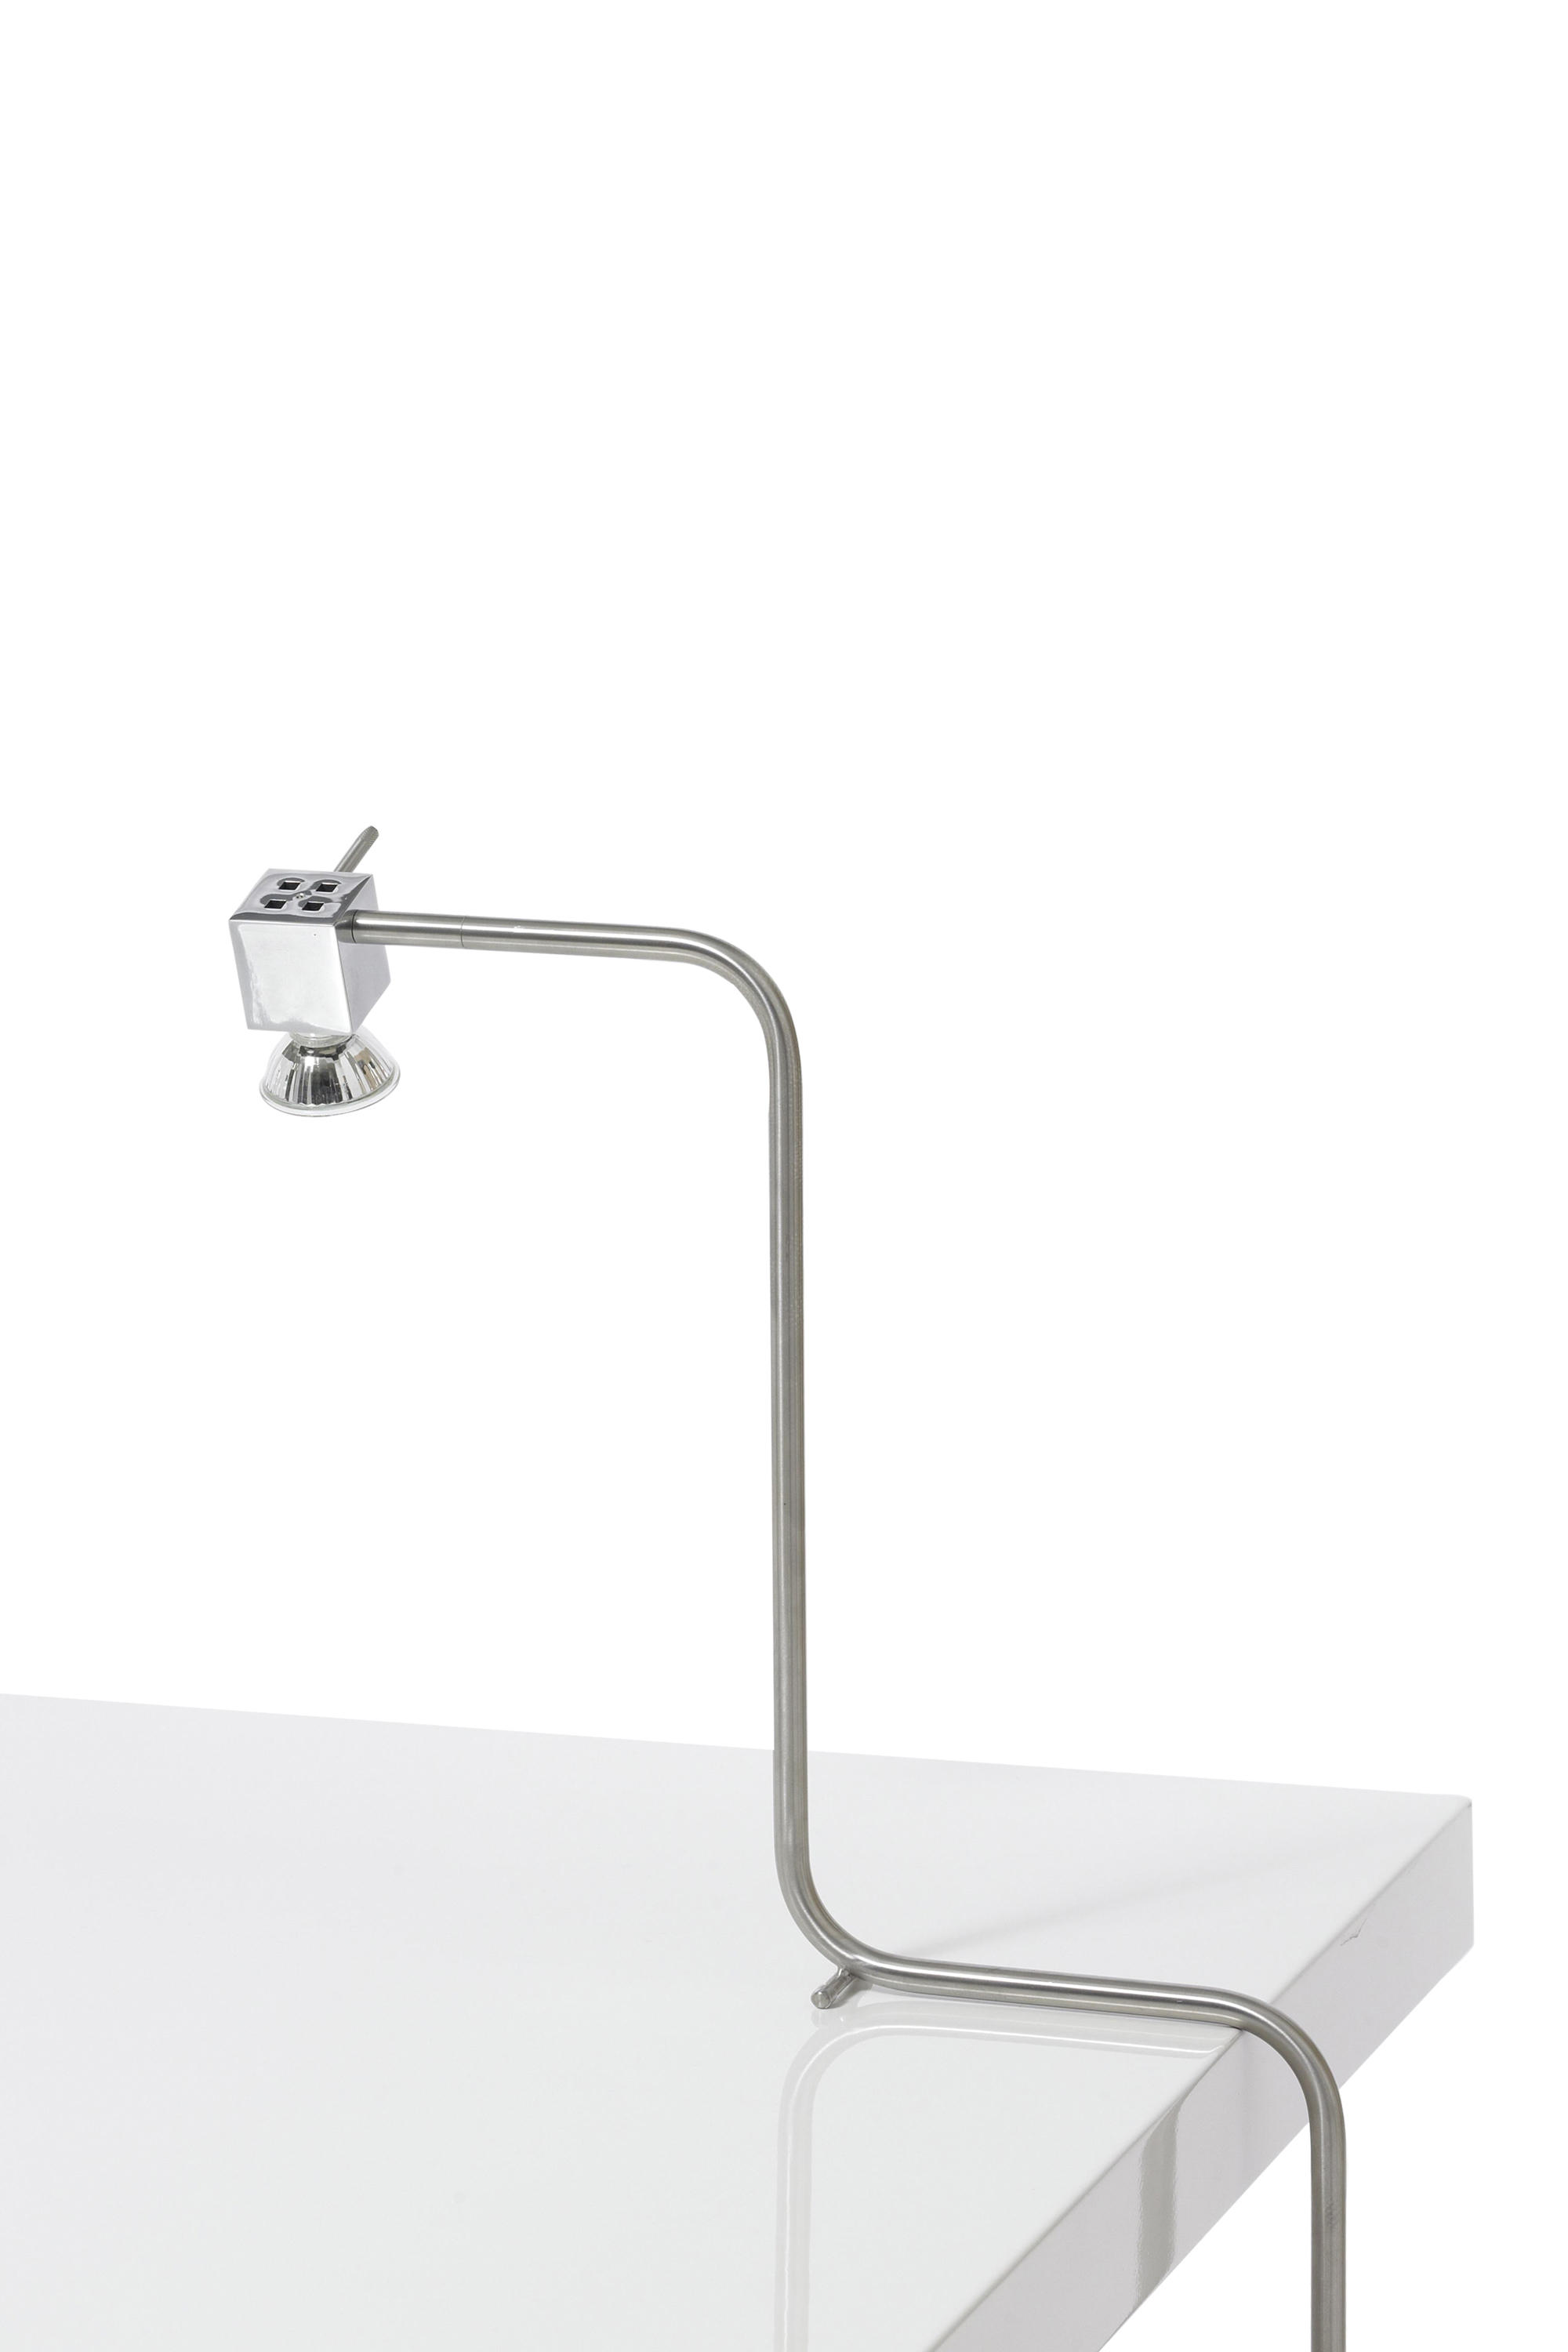 Safari mw17 table lamp general lighting from ghyczy architonic safari mw17 table lamp by ghyczy general lighting geotapseo Image collections